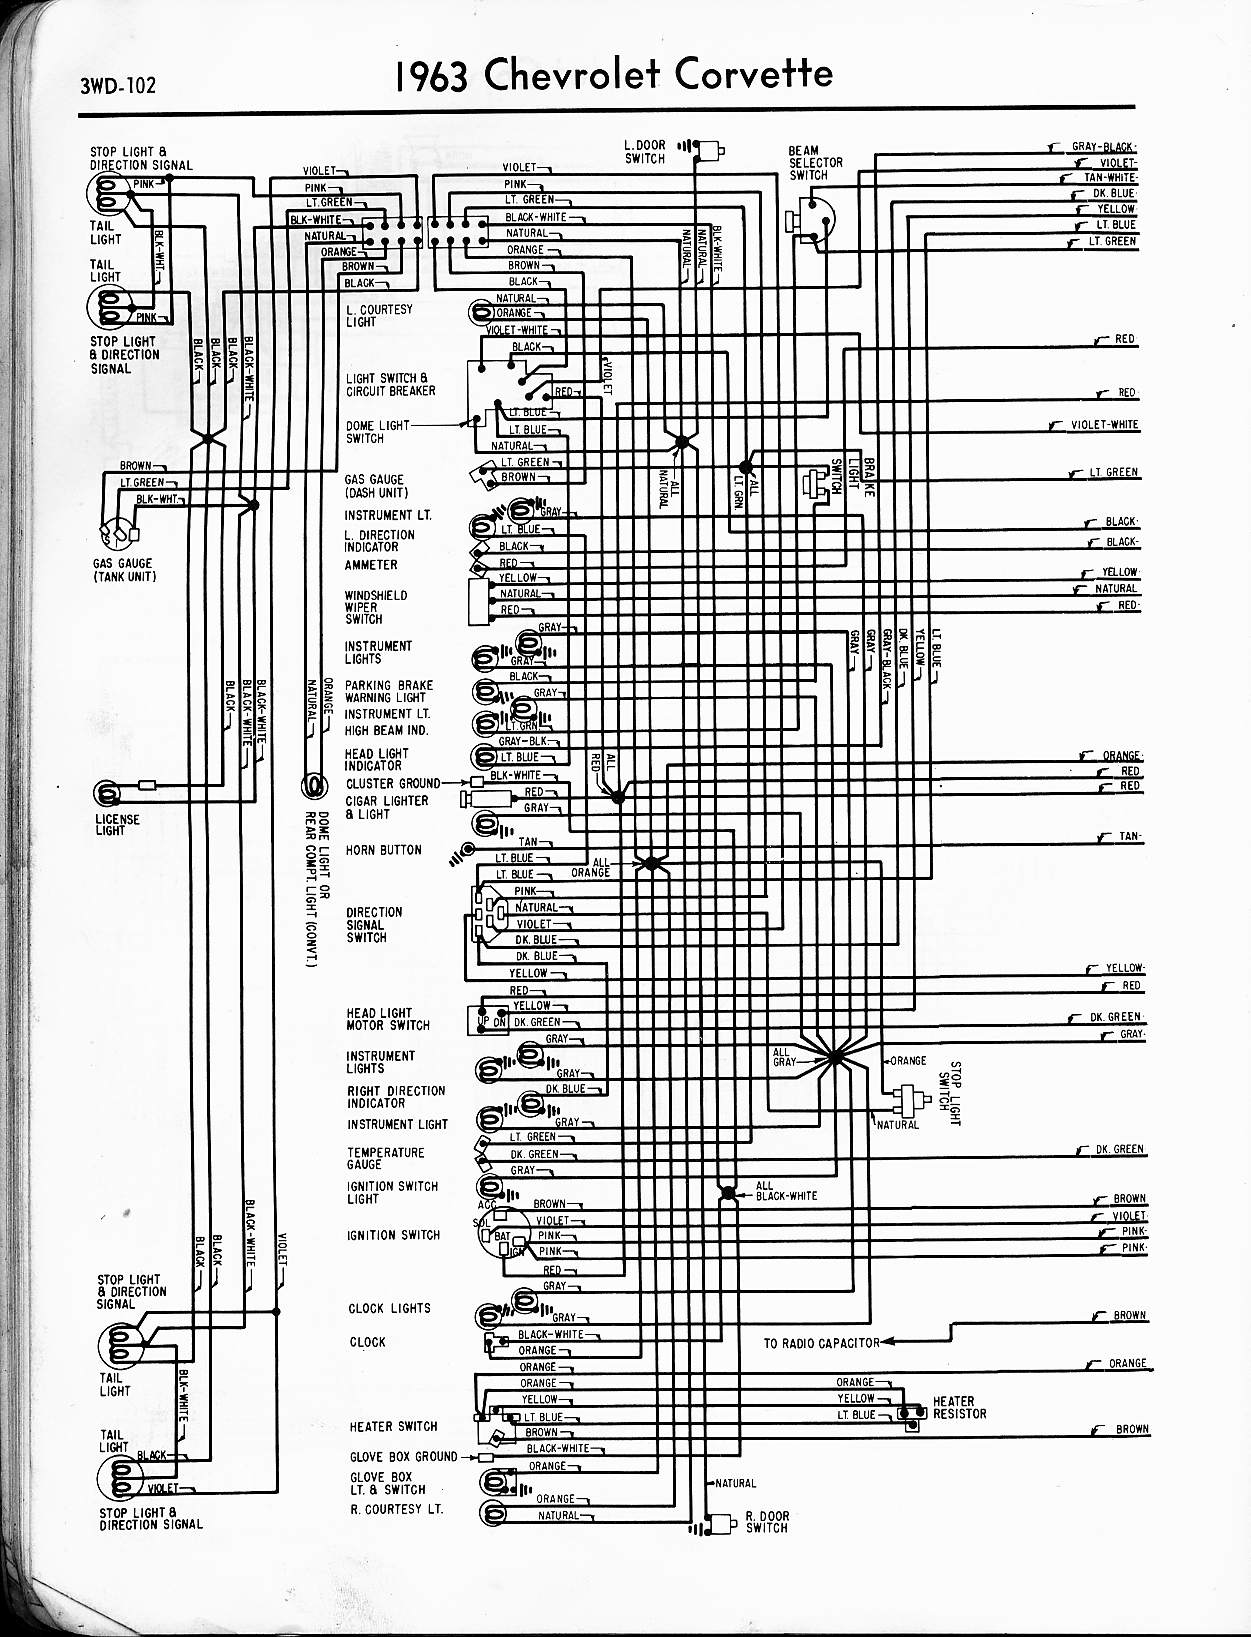 MWireChev63_3WD 102 57 65 chevy wiring diagrams 66 Corvette at panicattacktreatment.co